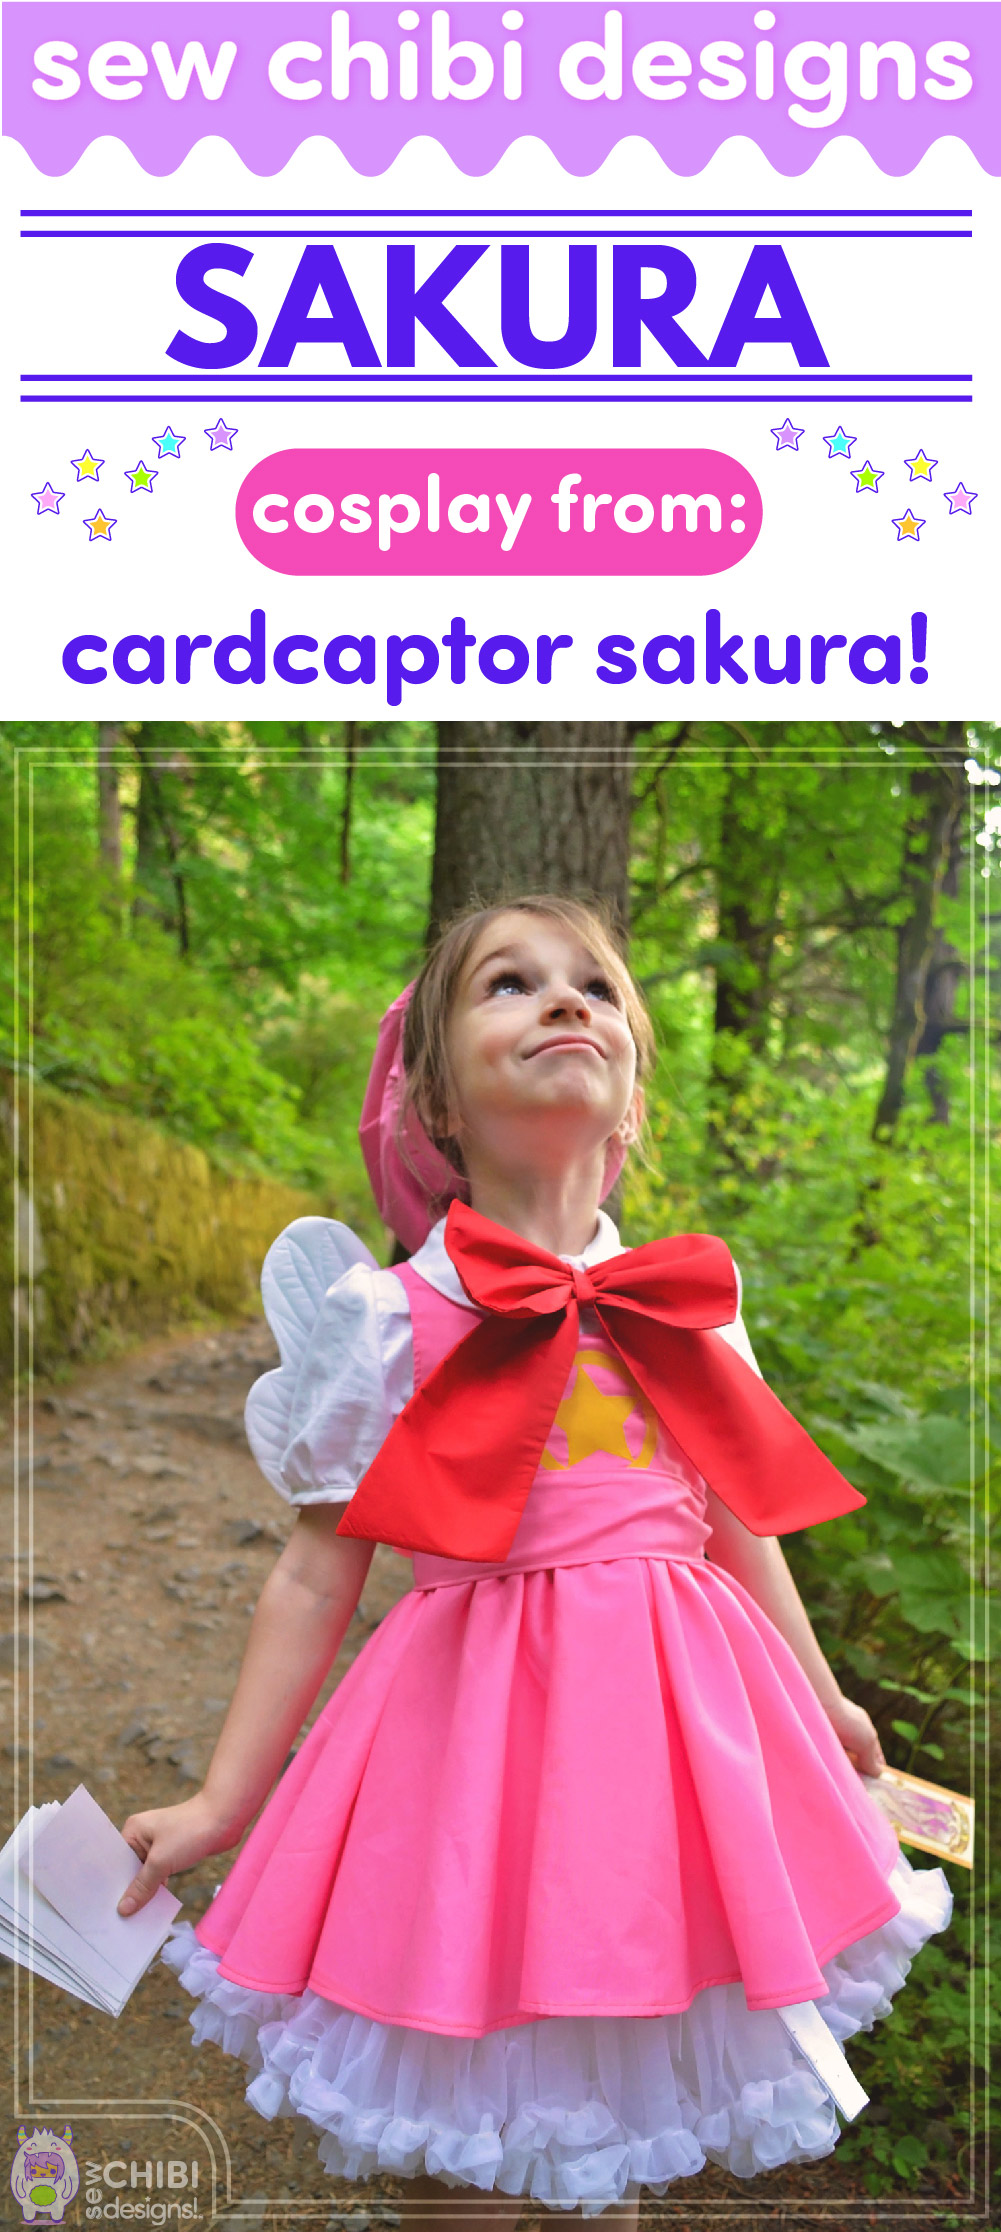 Sakura cosplay from Cardcaptor Sakura sewn by Sew Chibi Designs for Classic Anime Sew Geeky